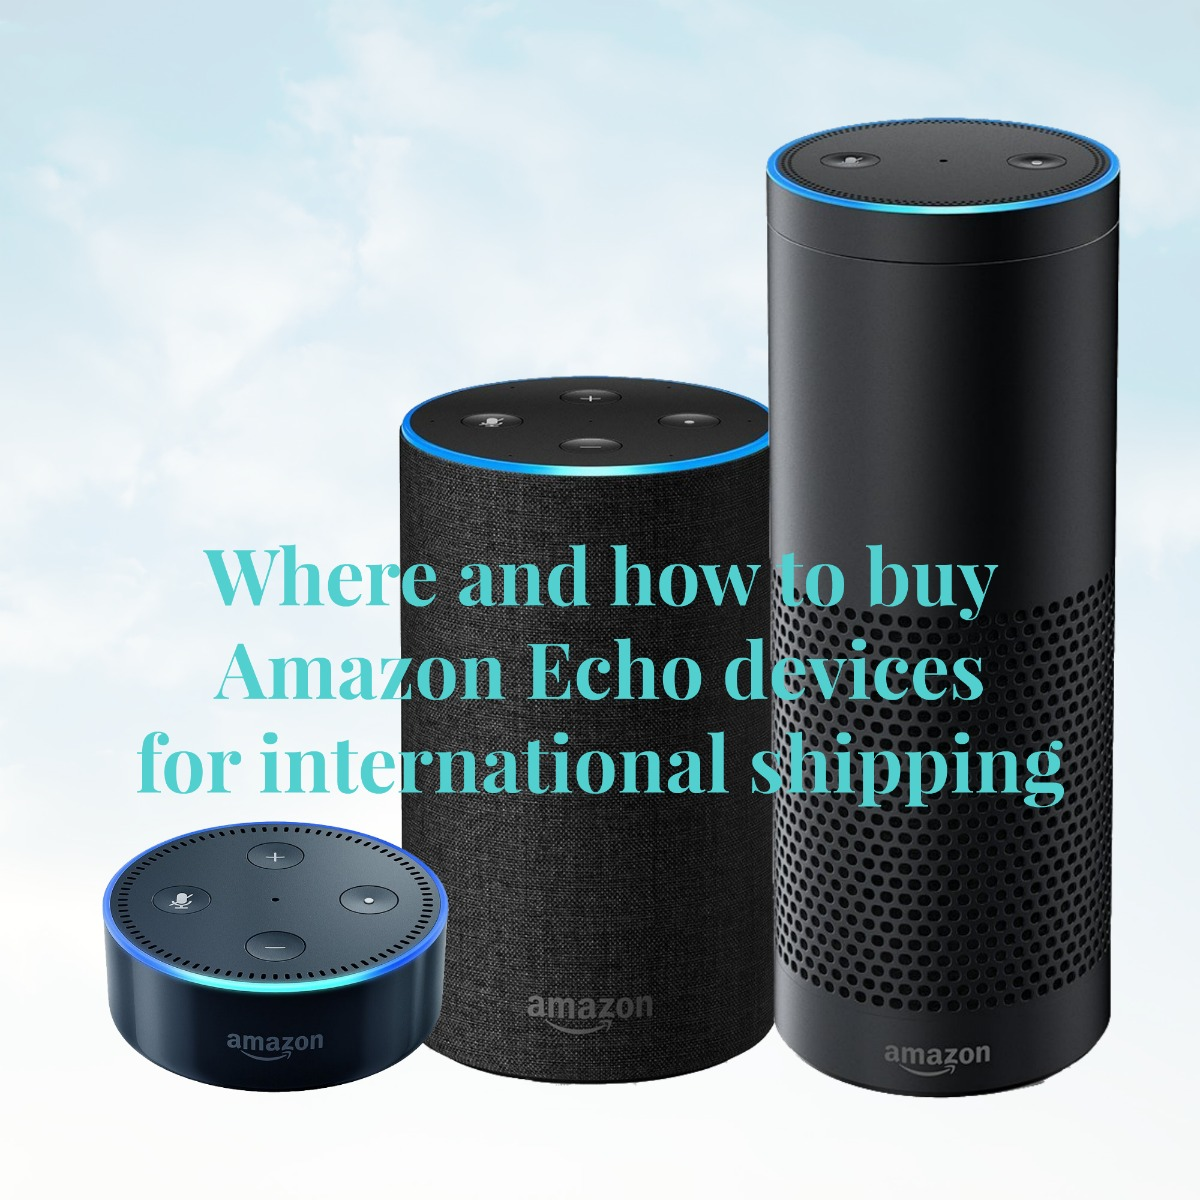 Where and how to buy Amazon Echo devices for international shipping